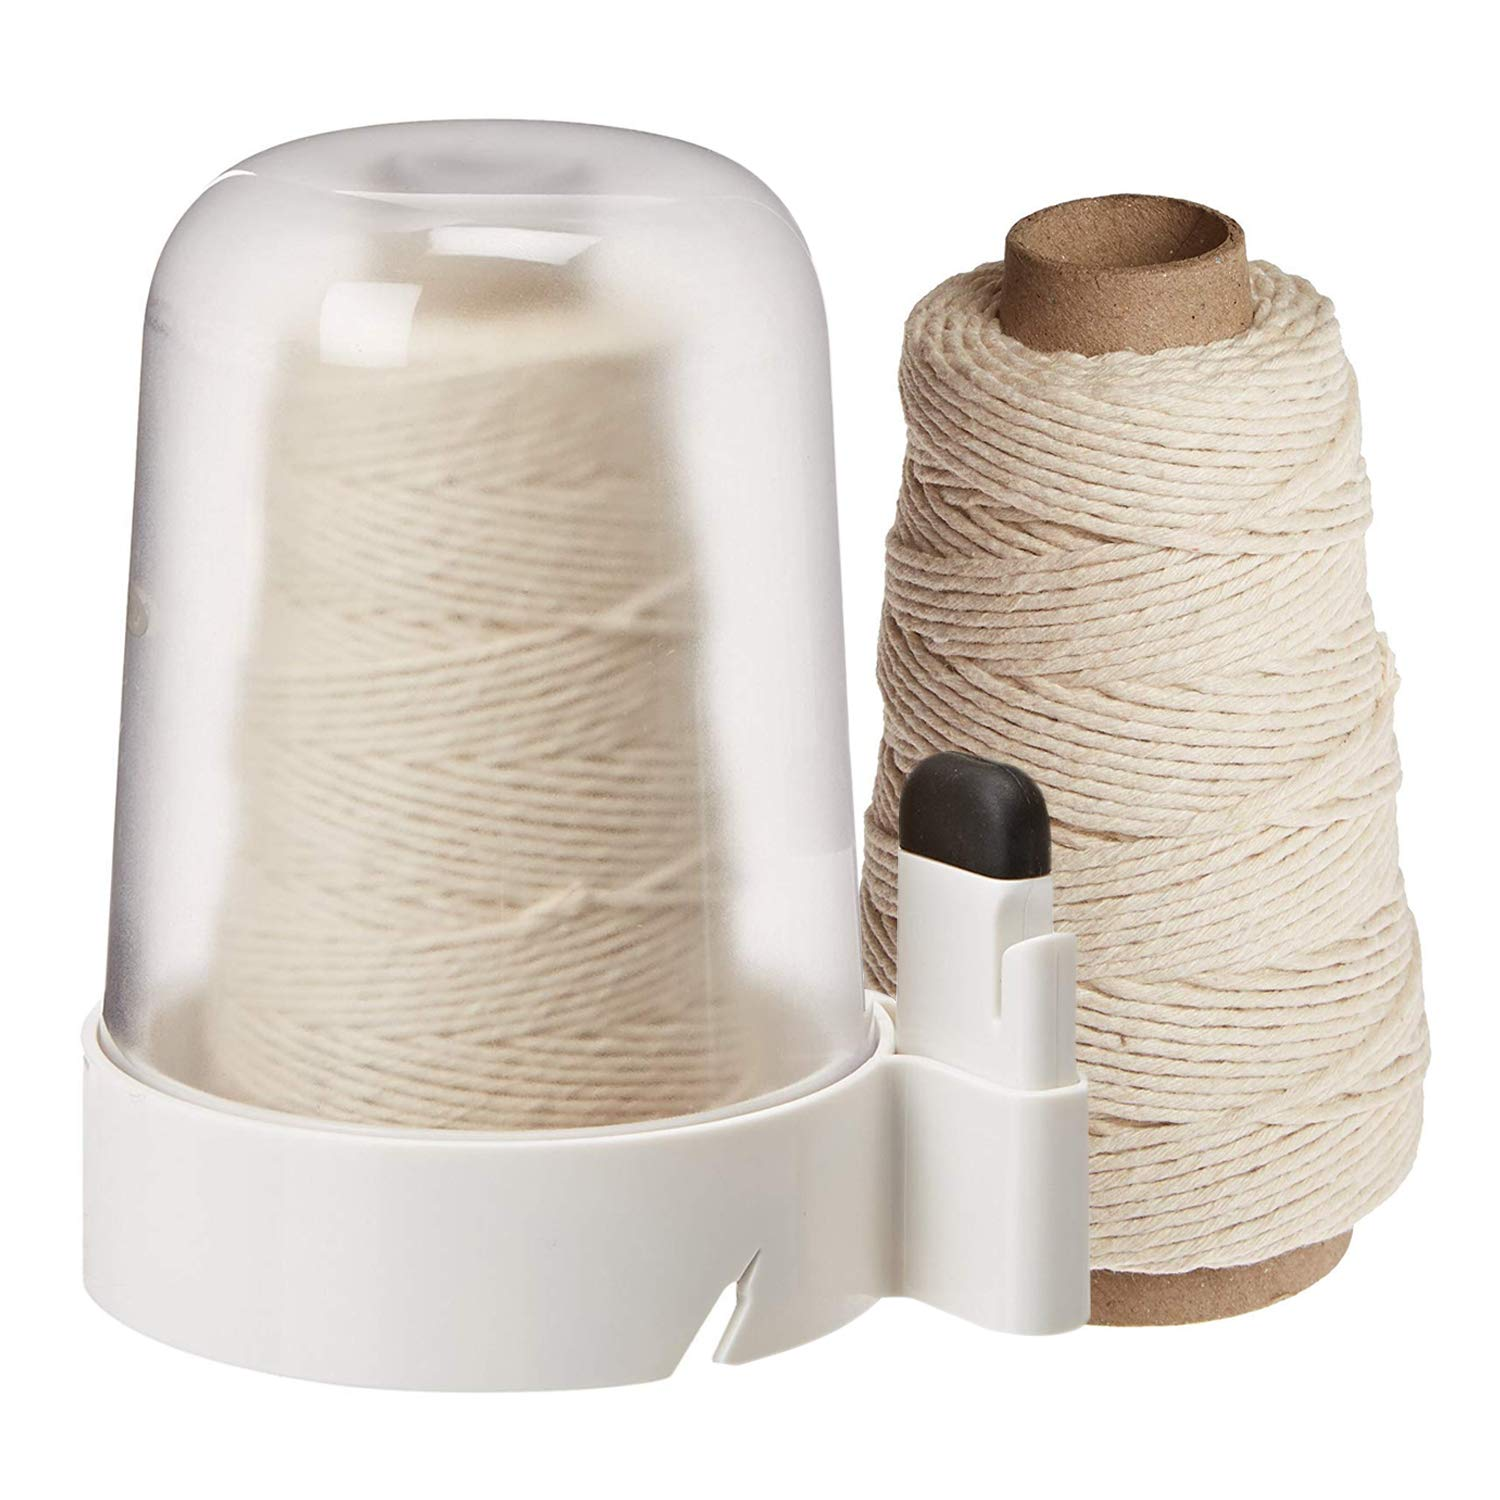 OXO Good Grips Twine Dispenser with Removable Cutter and 300-Feet Natural Cotton Twine Refill (600 ft Total) by OXO